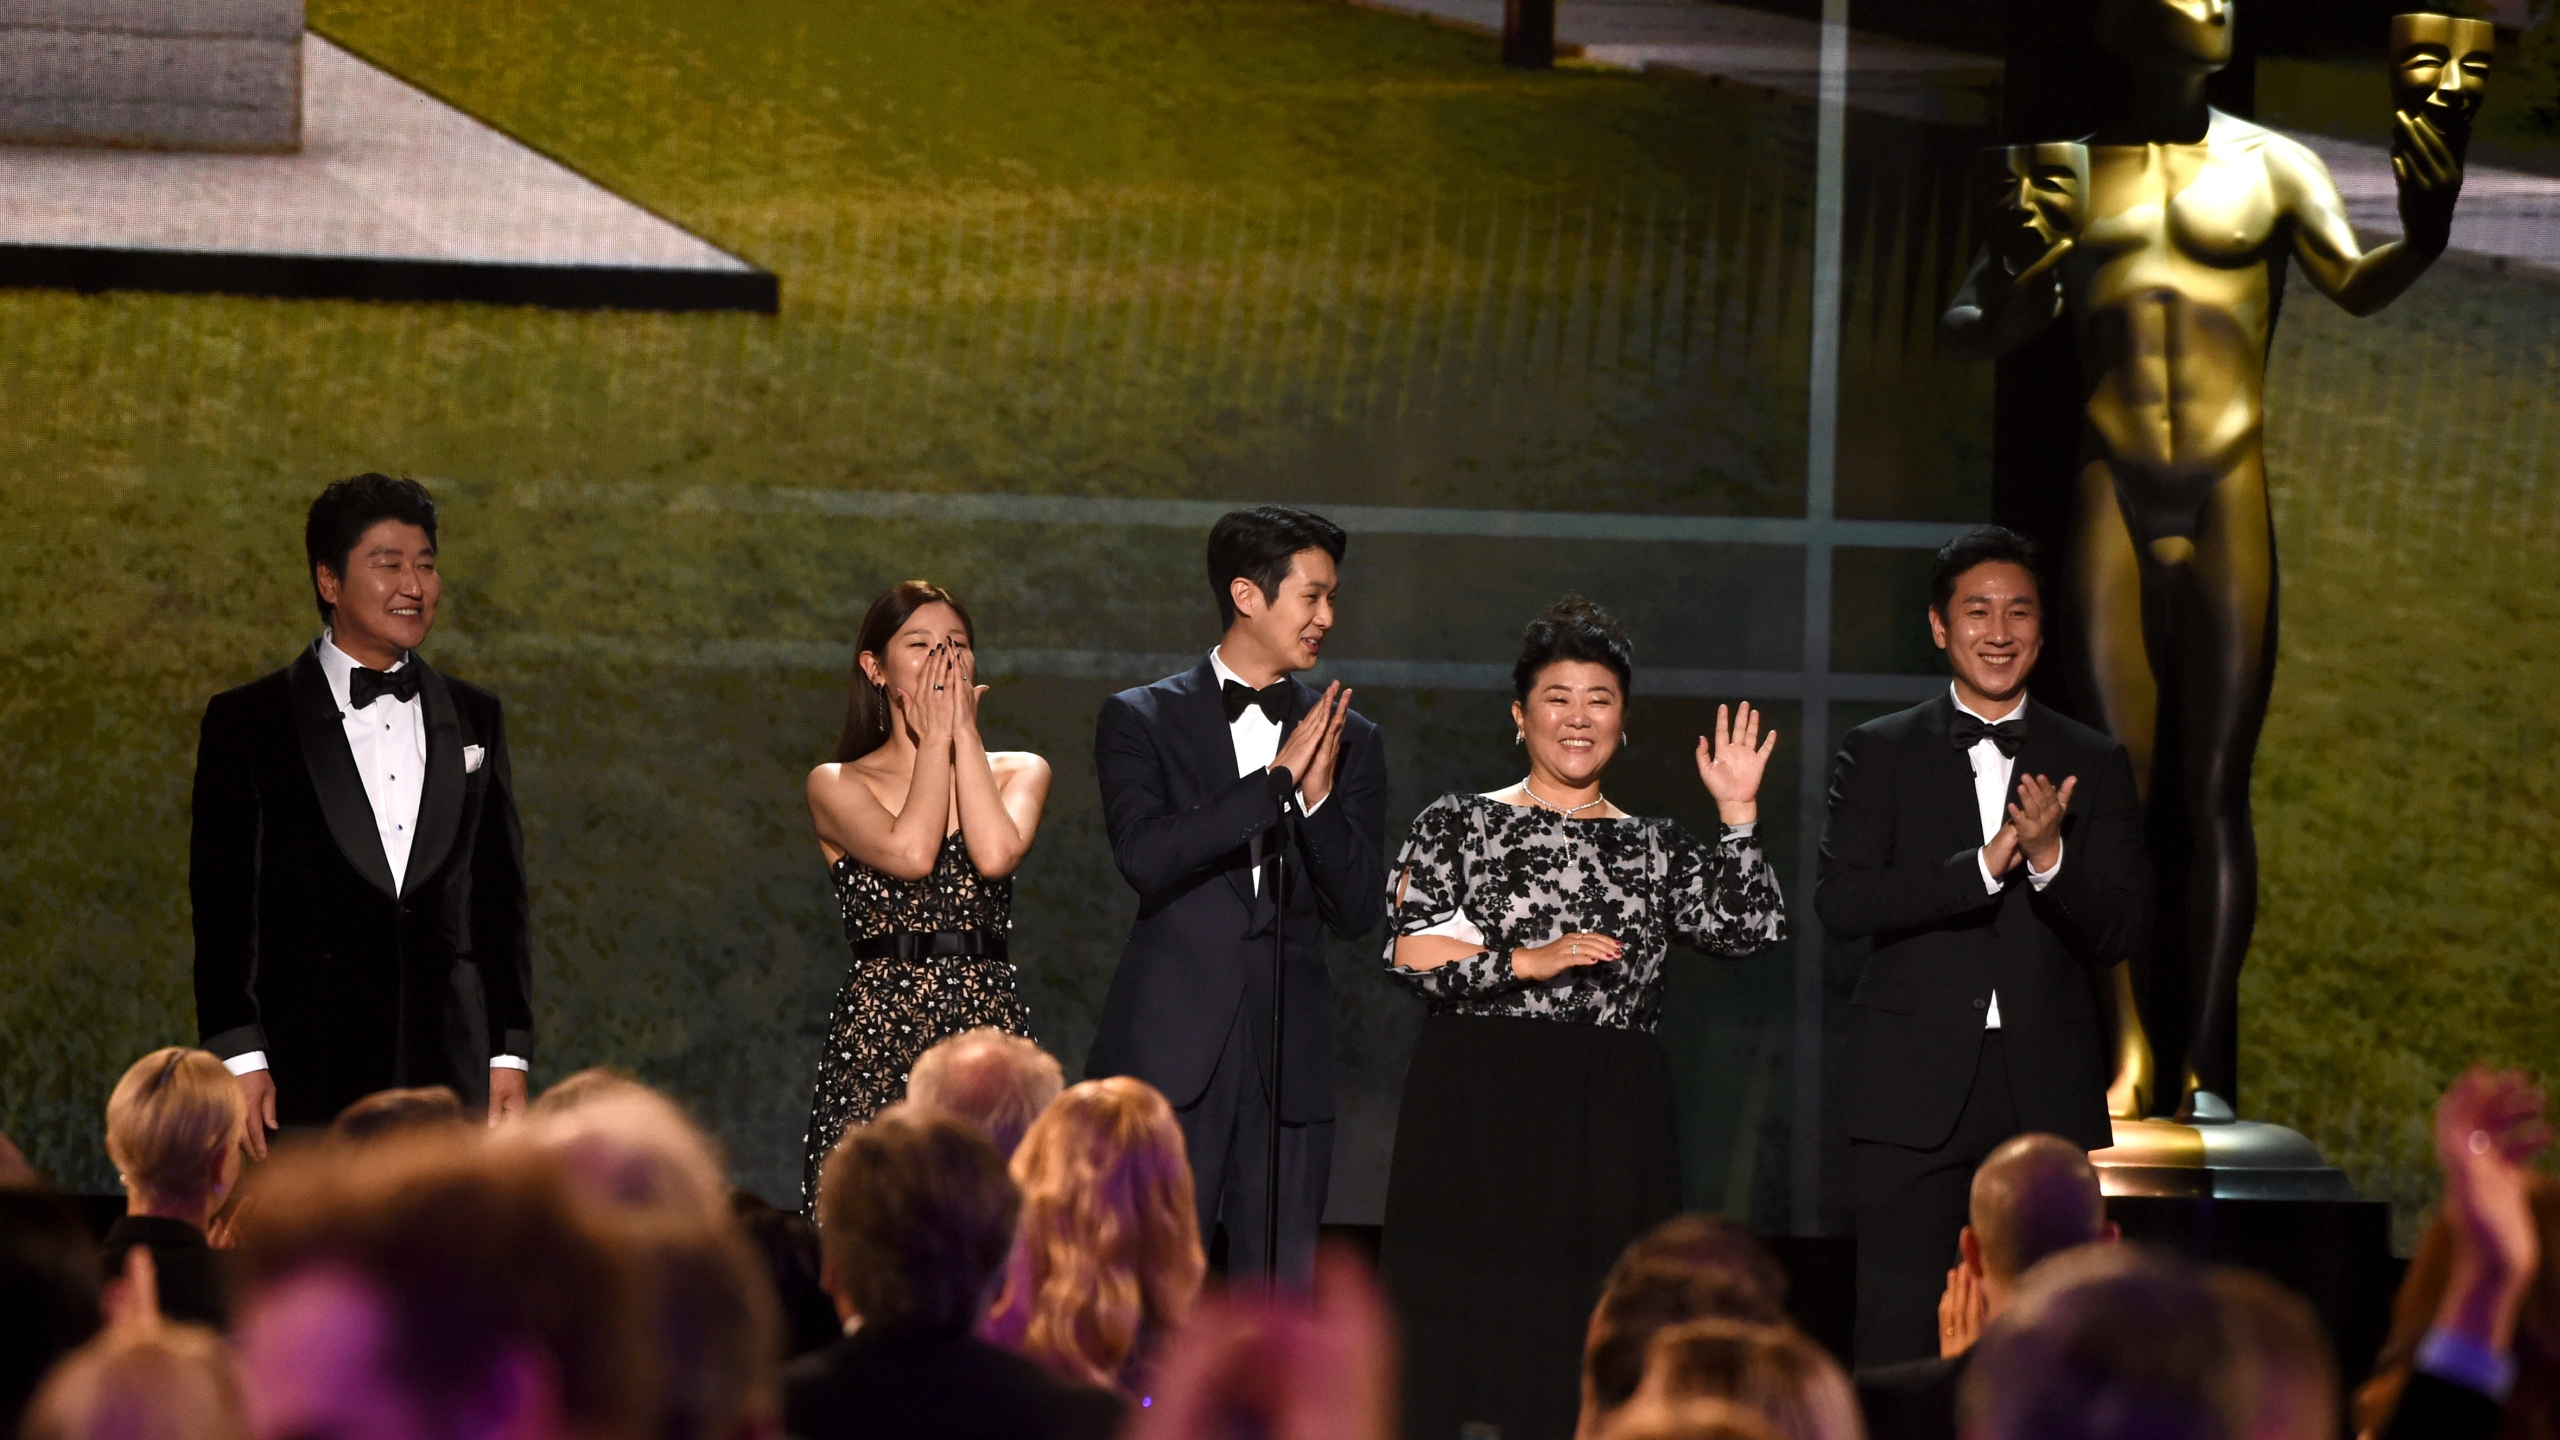 Kang-Ho Song, Park So Dam, Choi Woo-shik, Lee Jeong-eun, Lee Sun Gyun